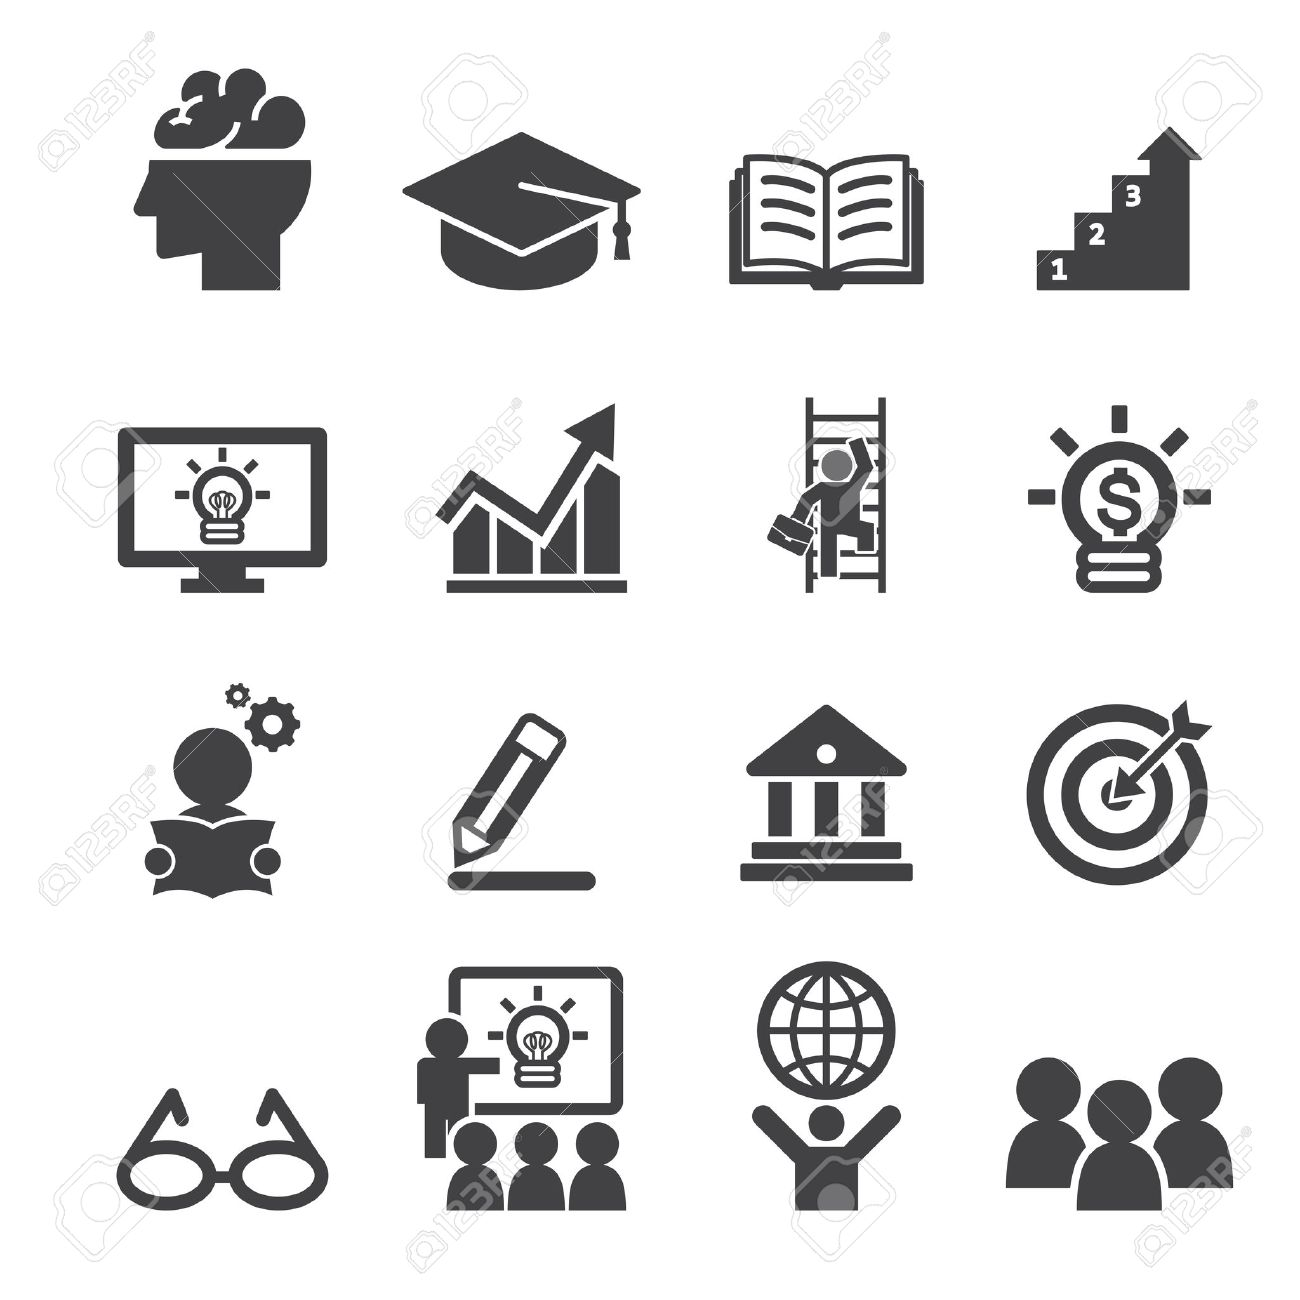 Business Education Icon Royalty Free Cliparts, Vectors, And Stock ...